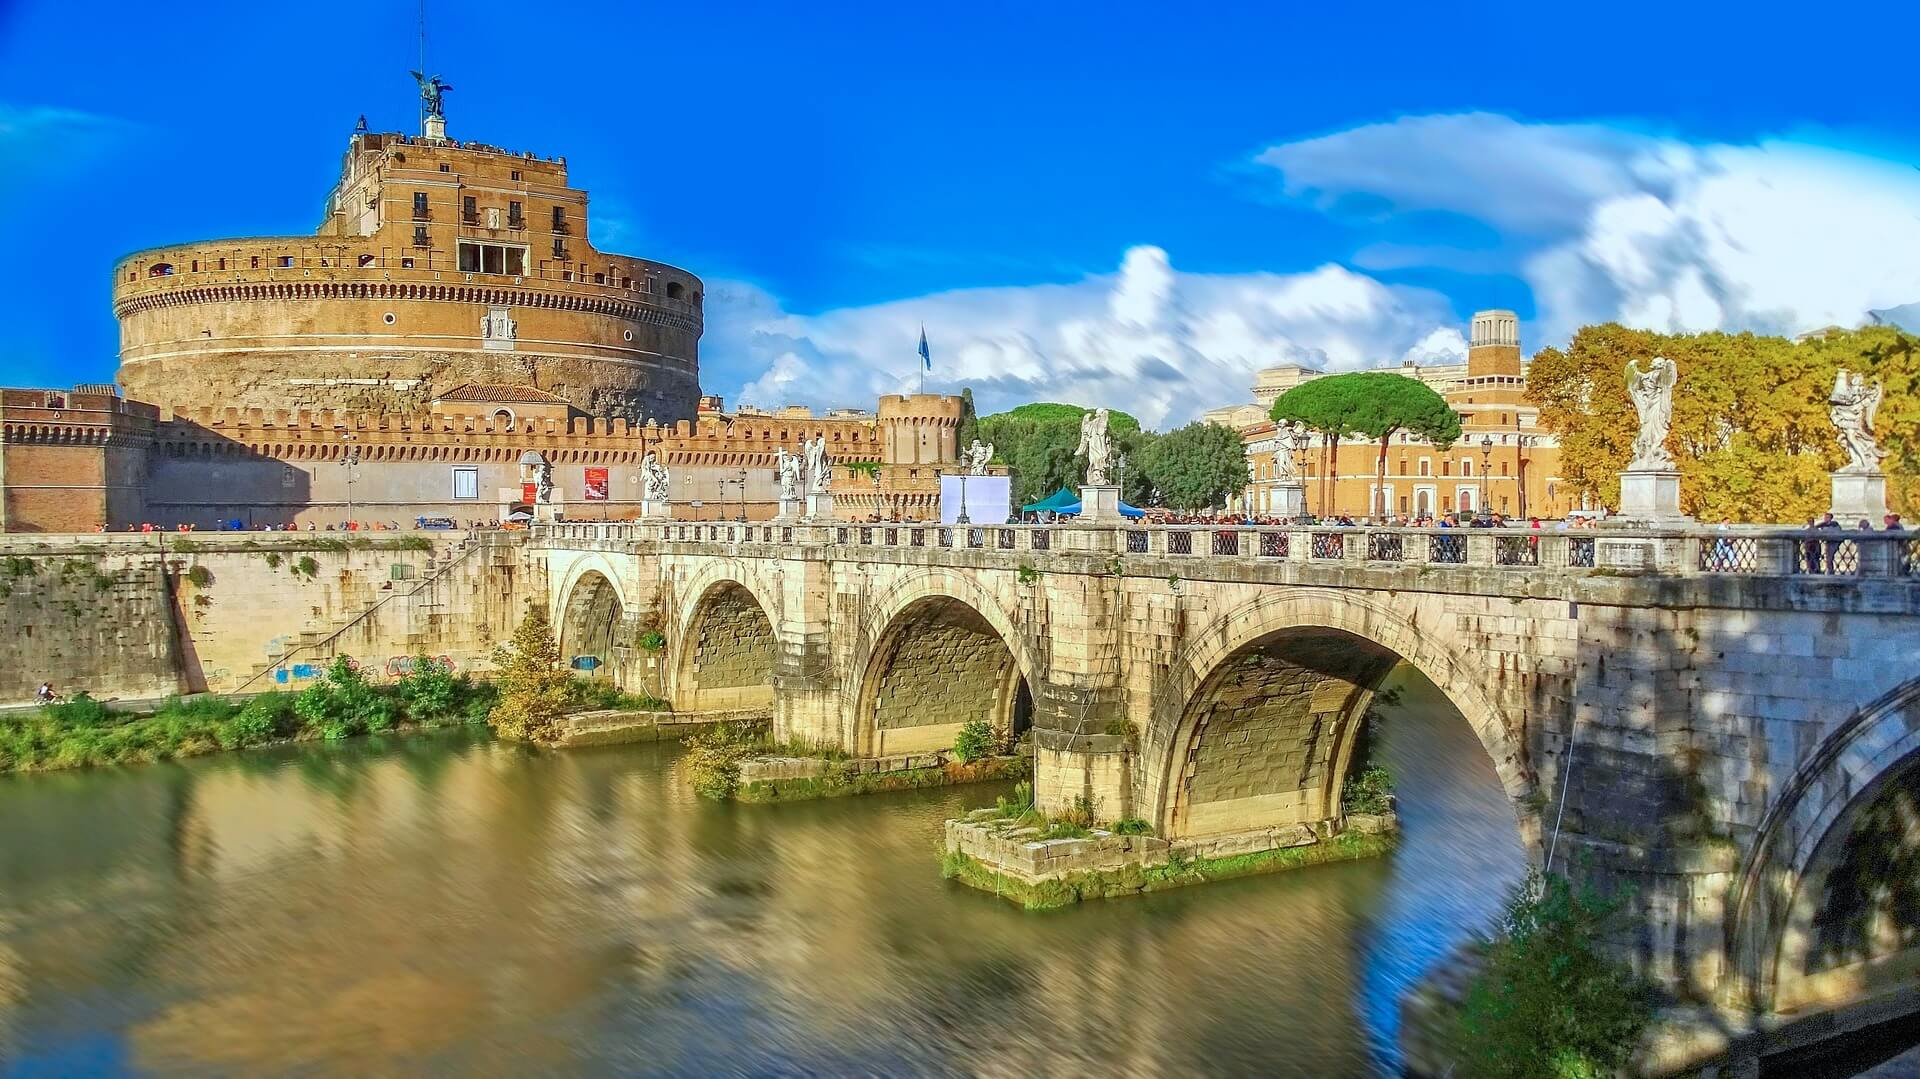 In this picture, you will see the Castel Sant Angelo which is a cylindrical building with a bridge in front of it